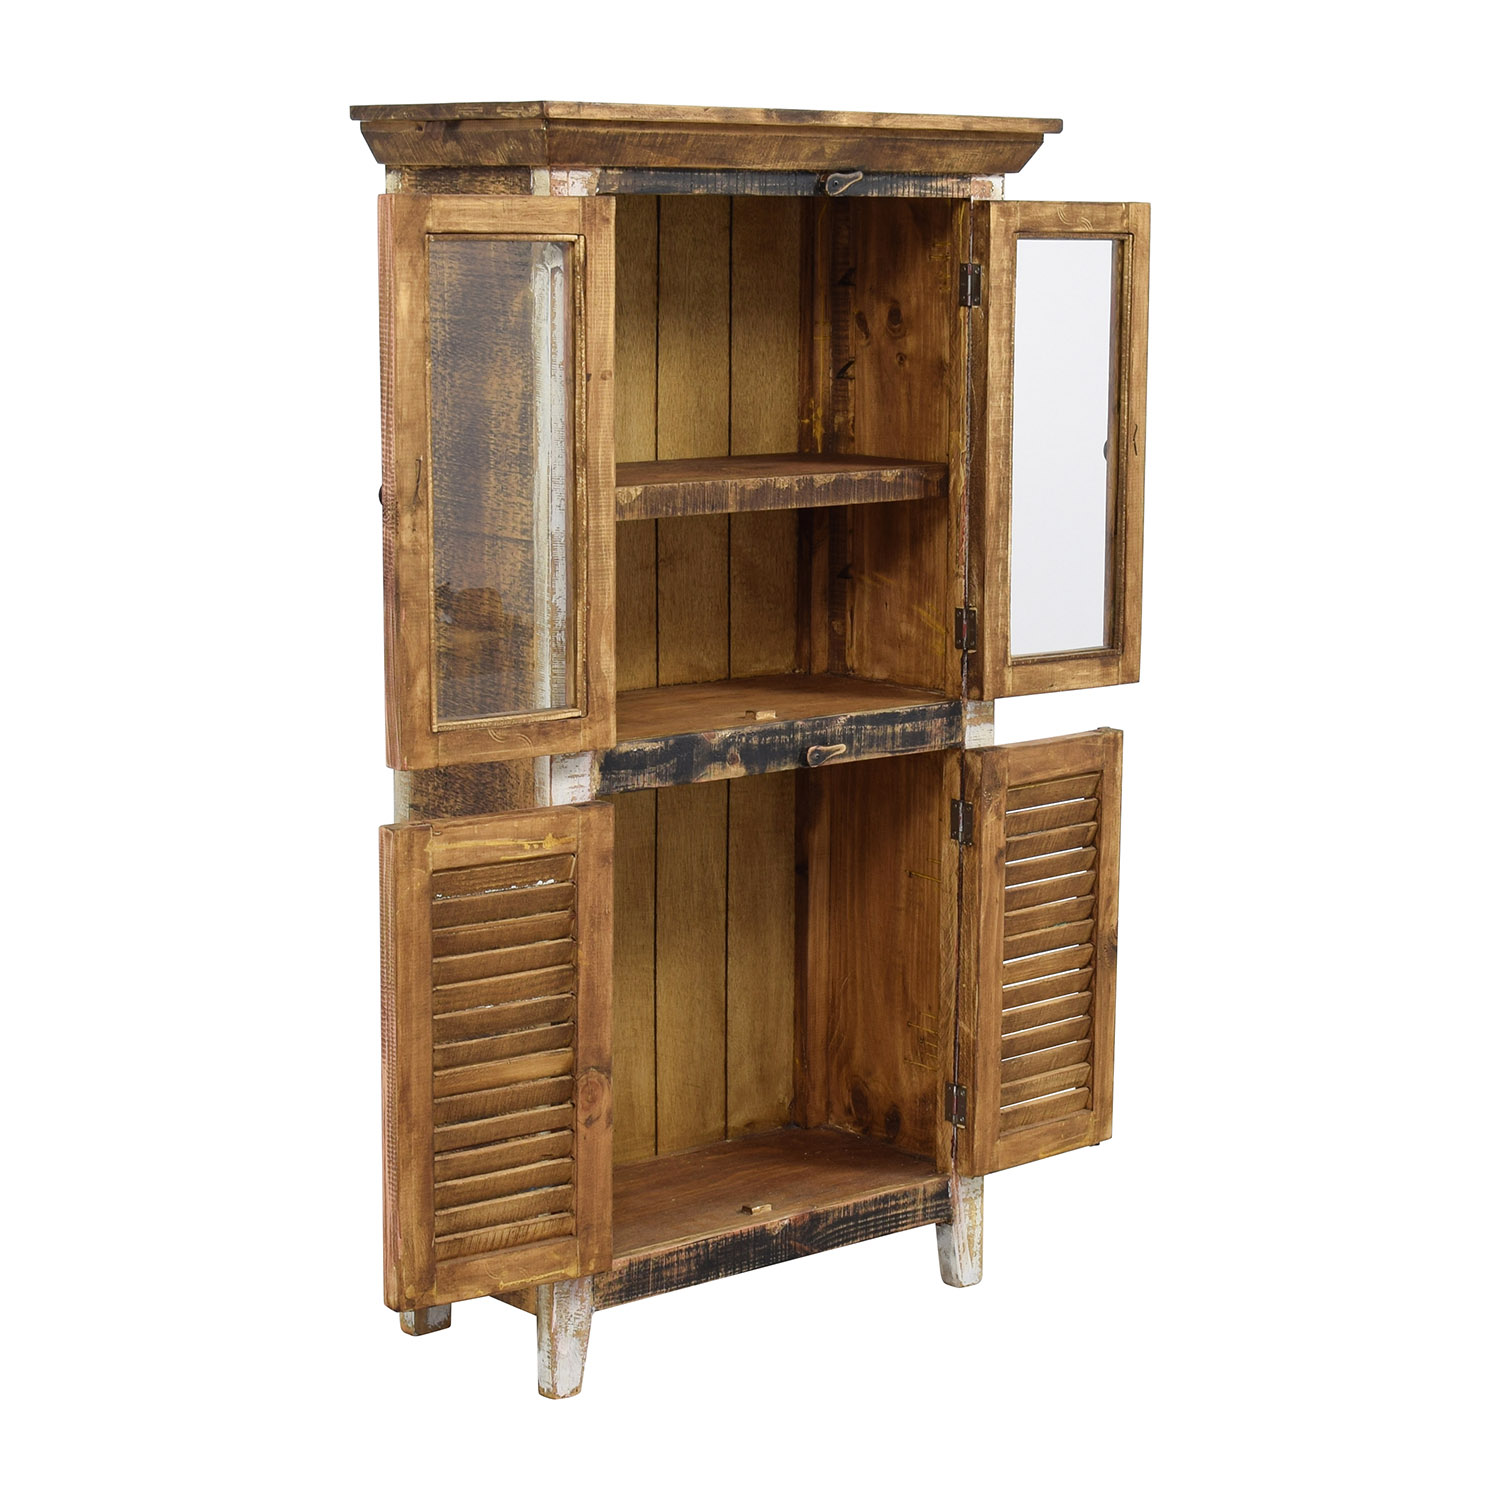 buy Antique Rustic Glass and Wood Cabinet Horizon Home